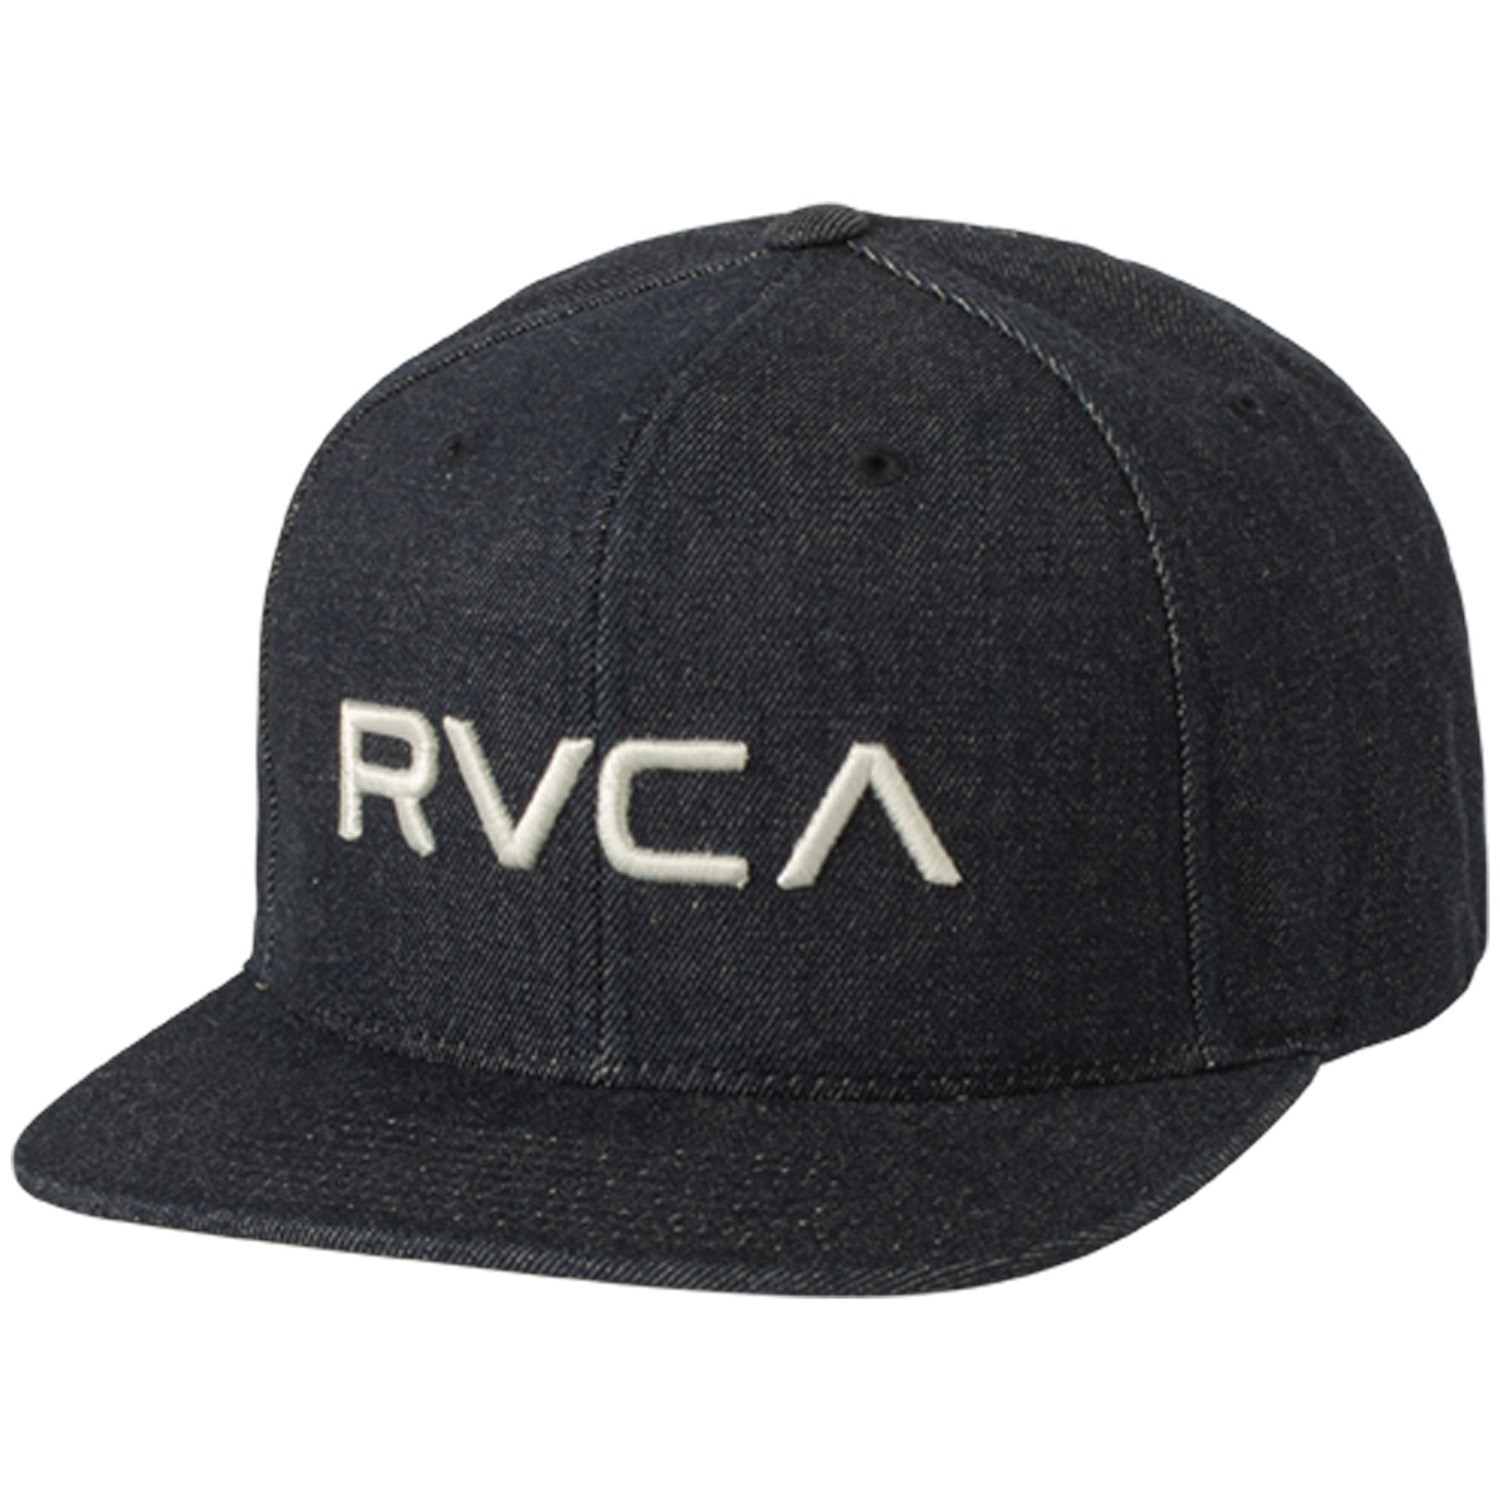 294dfb2043d13 get rvca snapback sale 26bf6 63aed